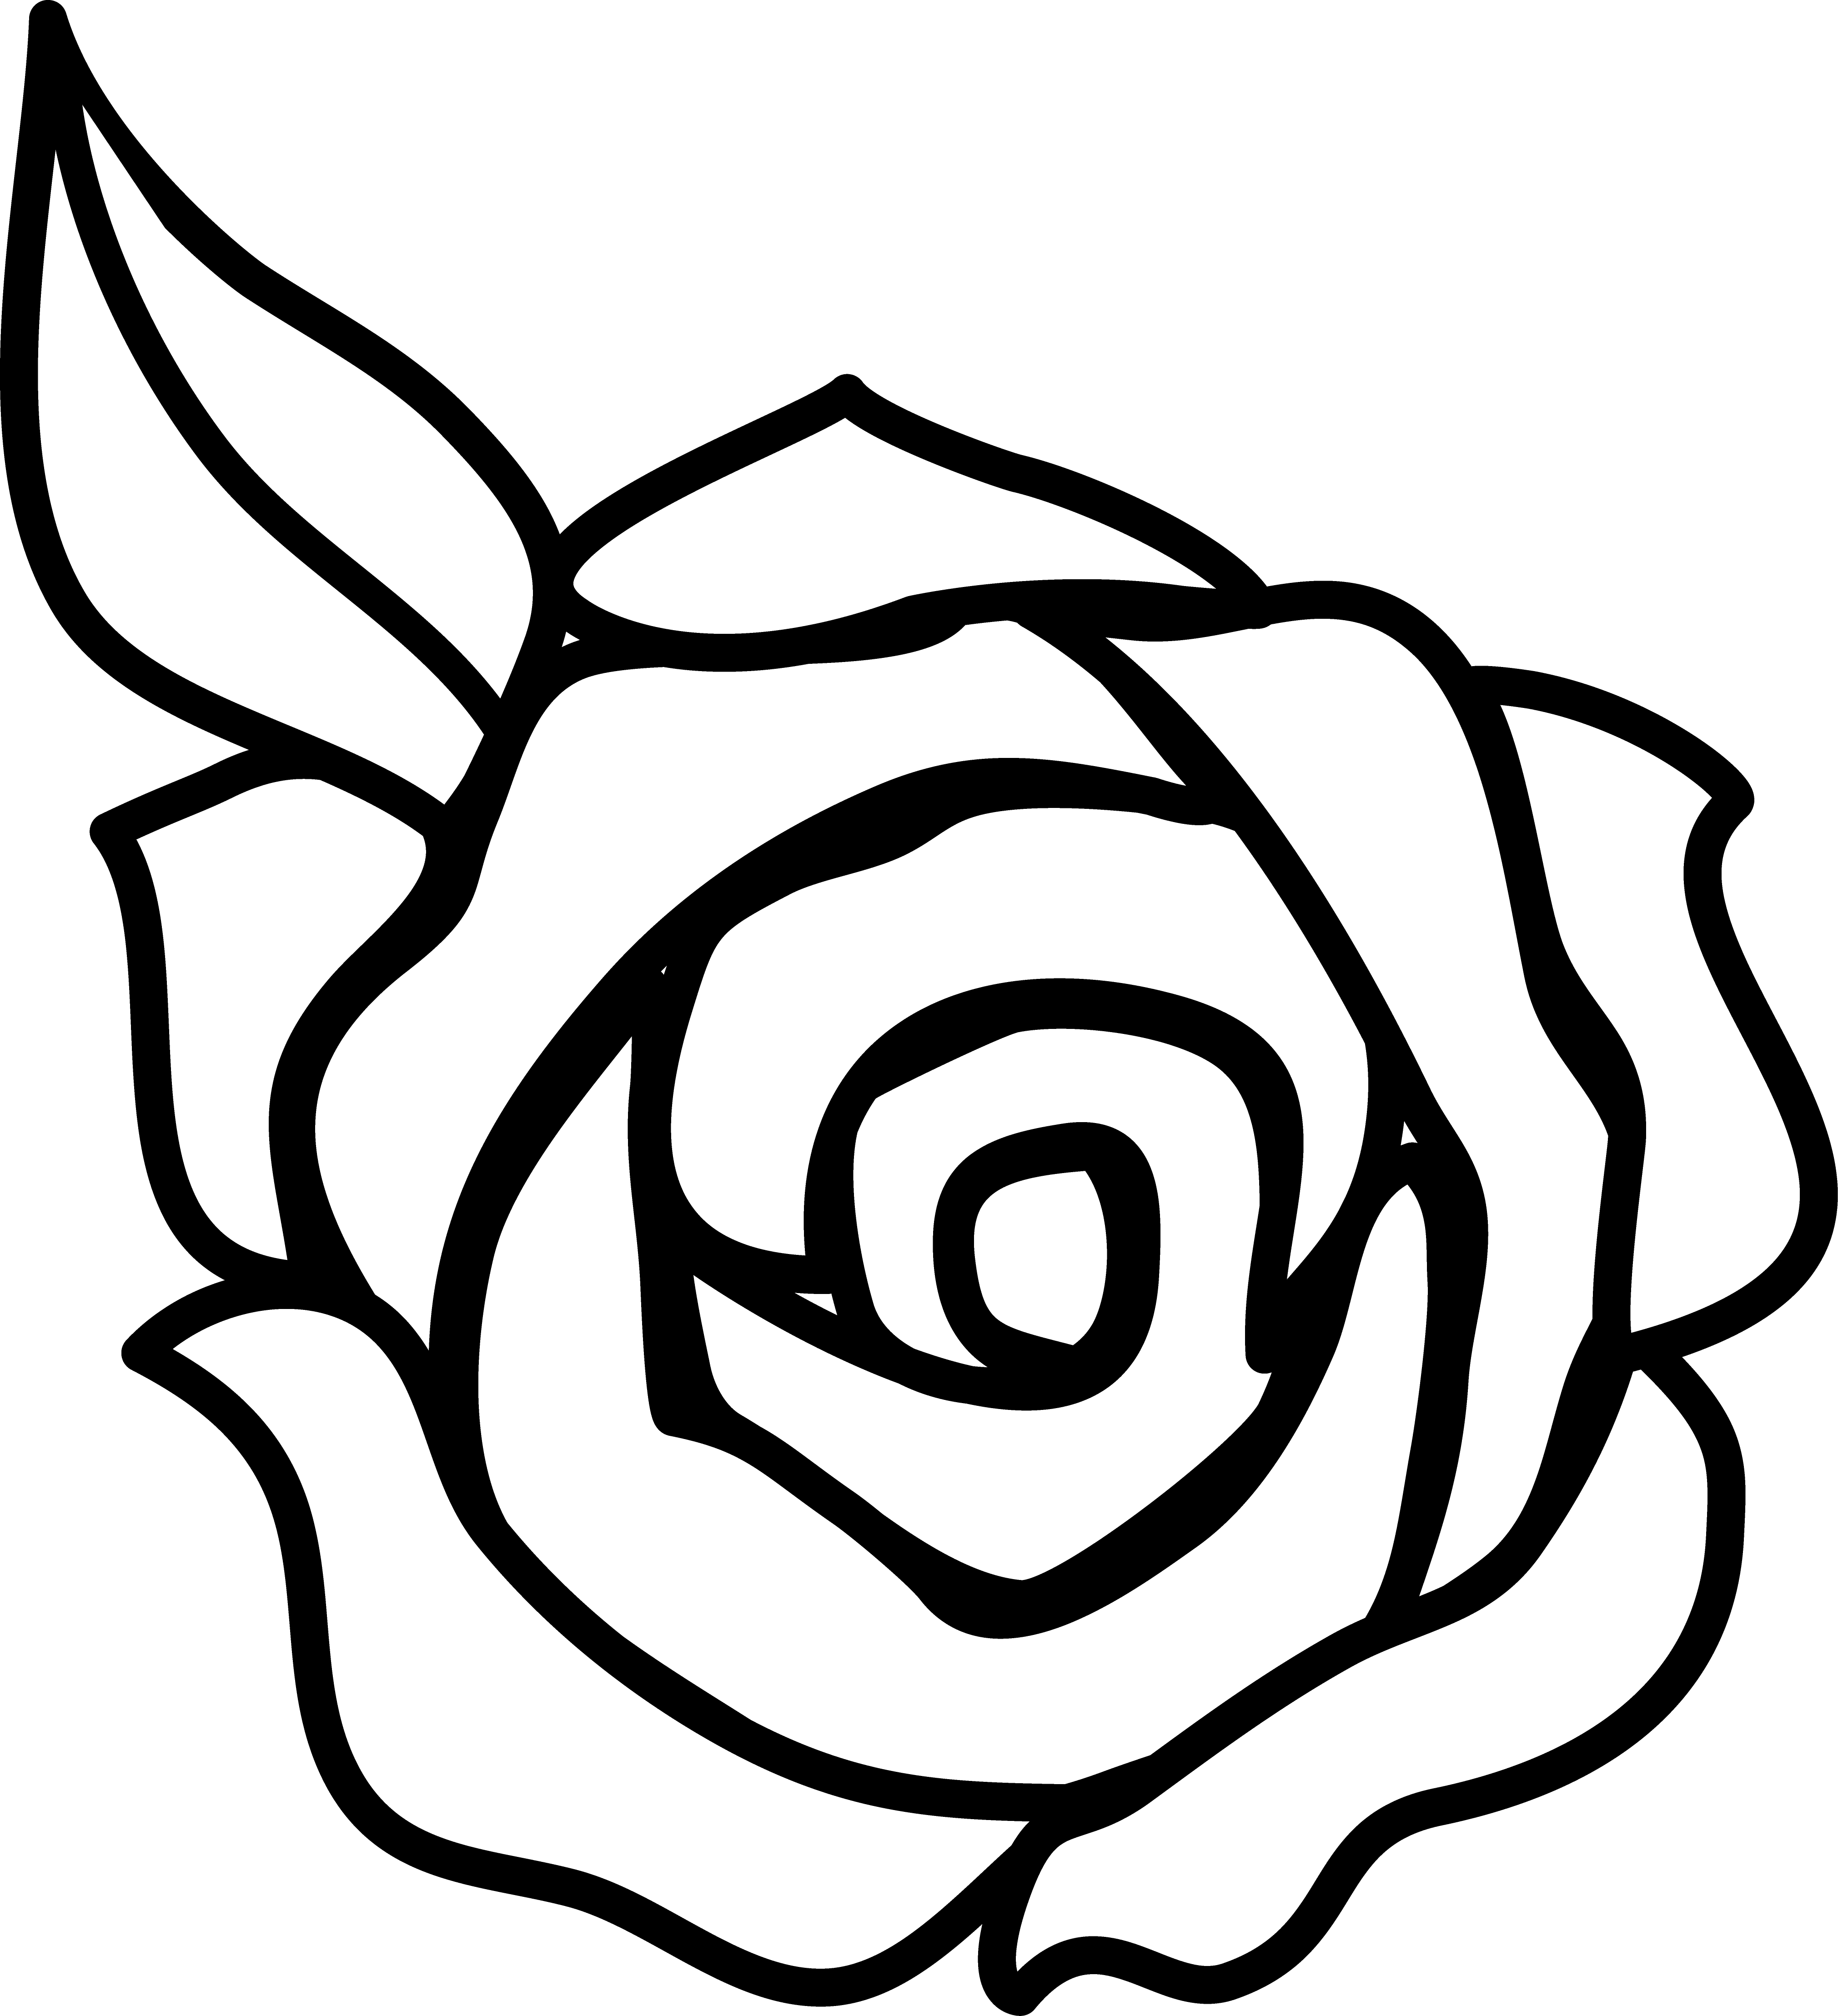 Black And White Rose Border Clip Art.